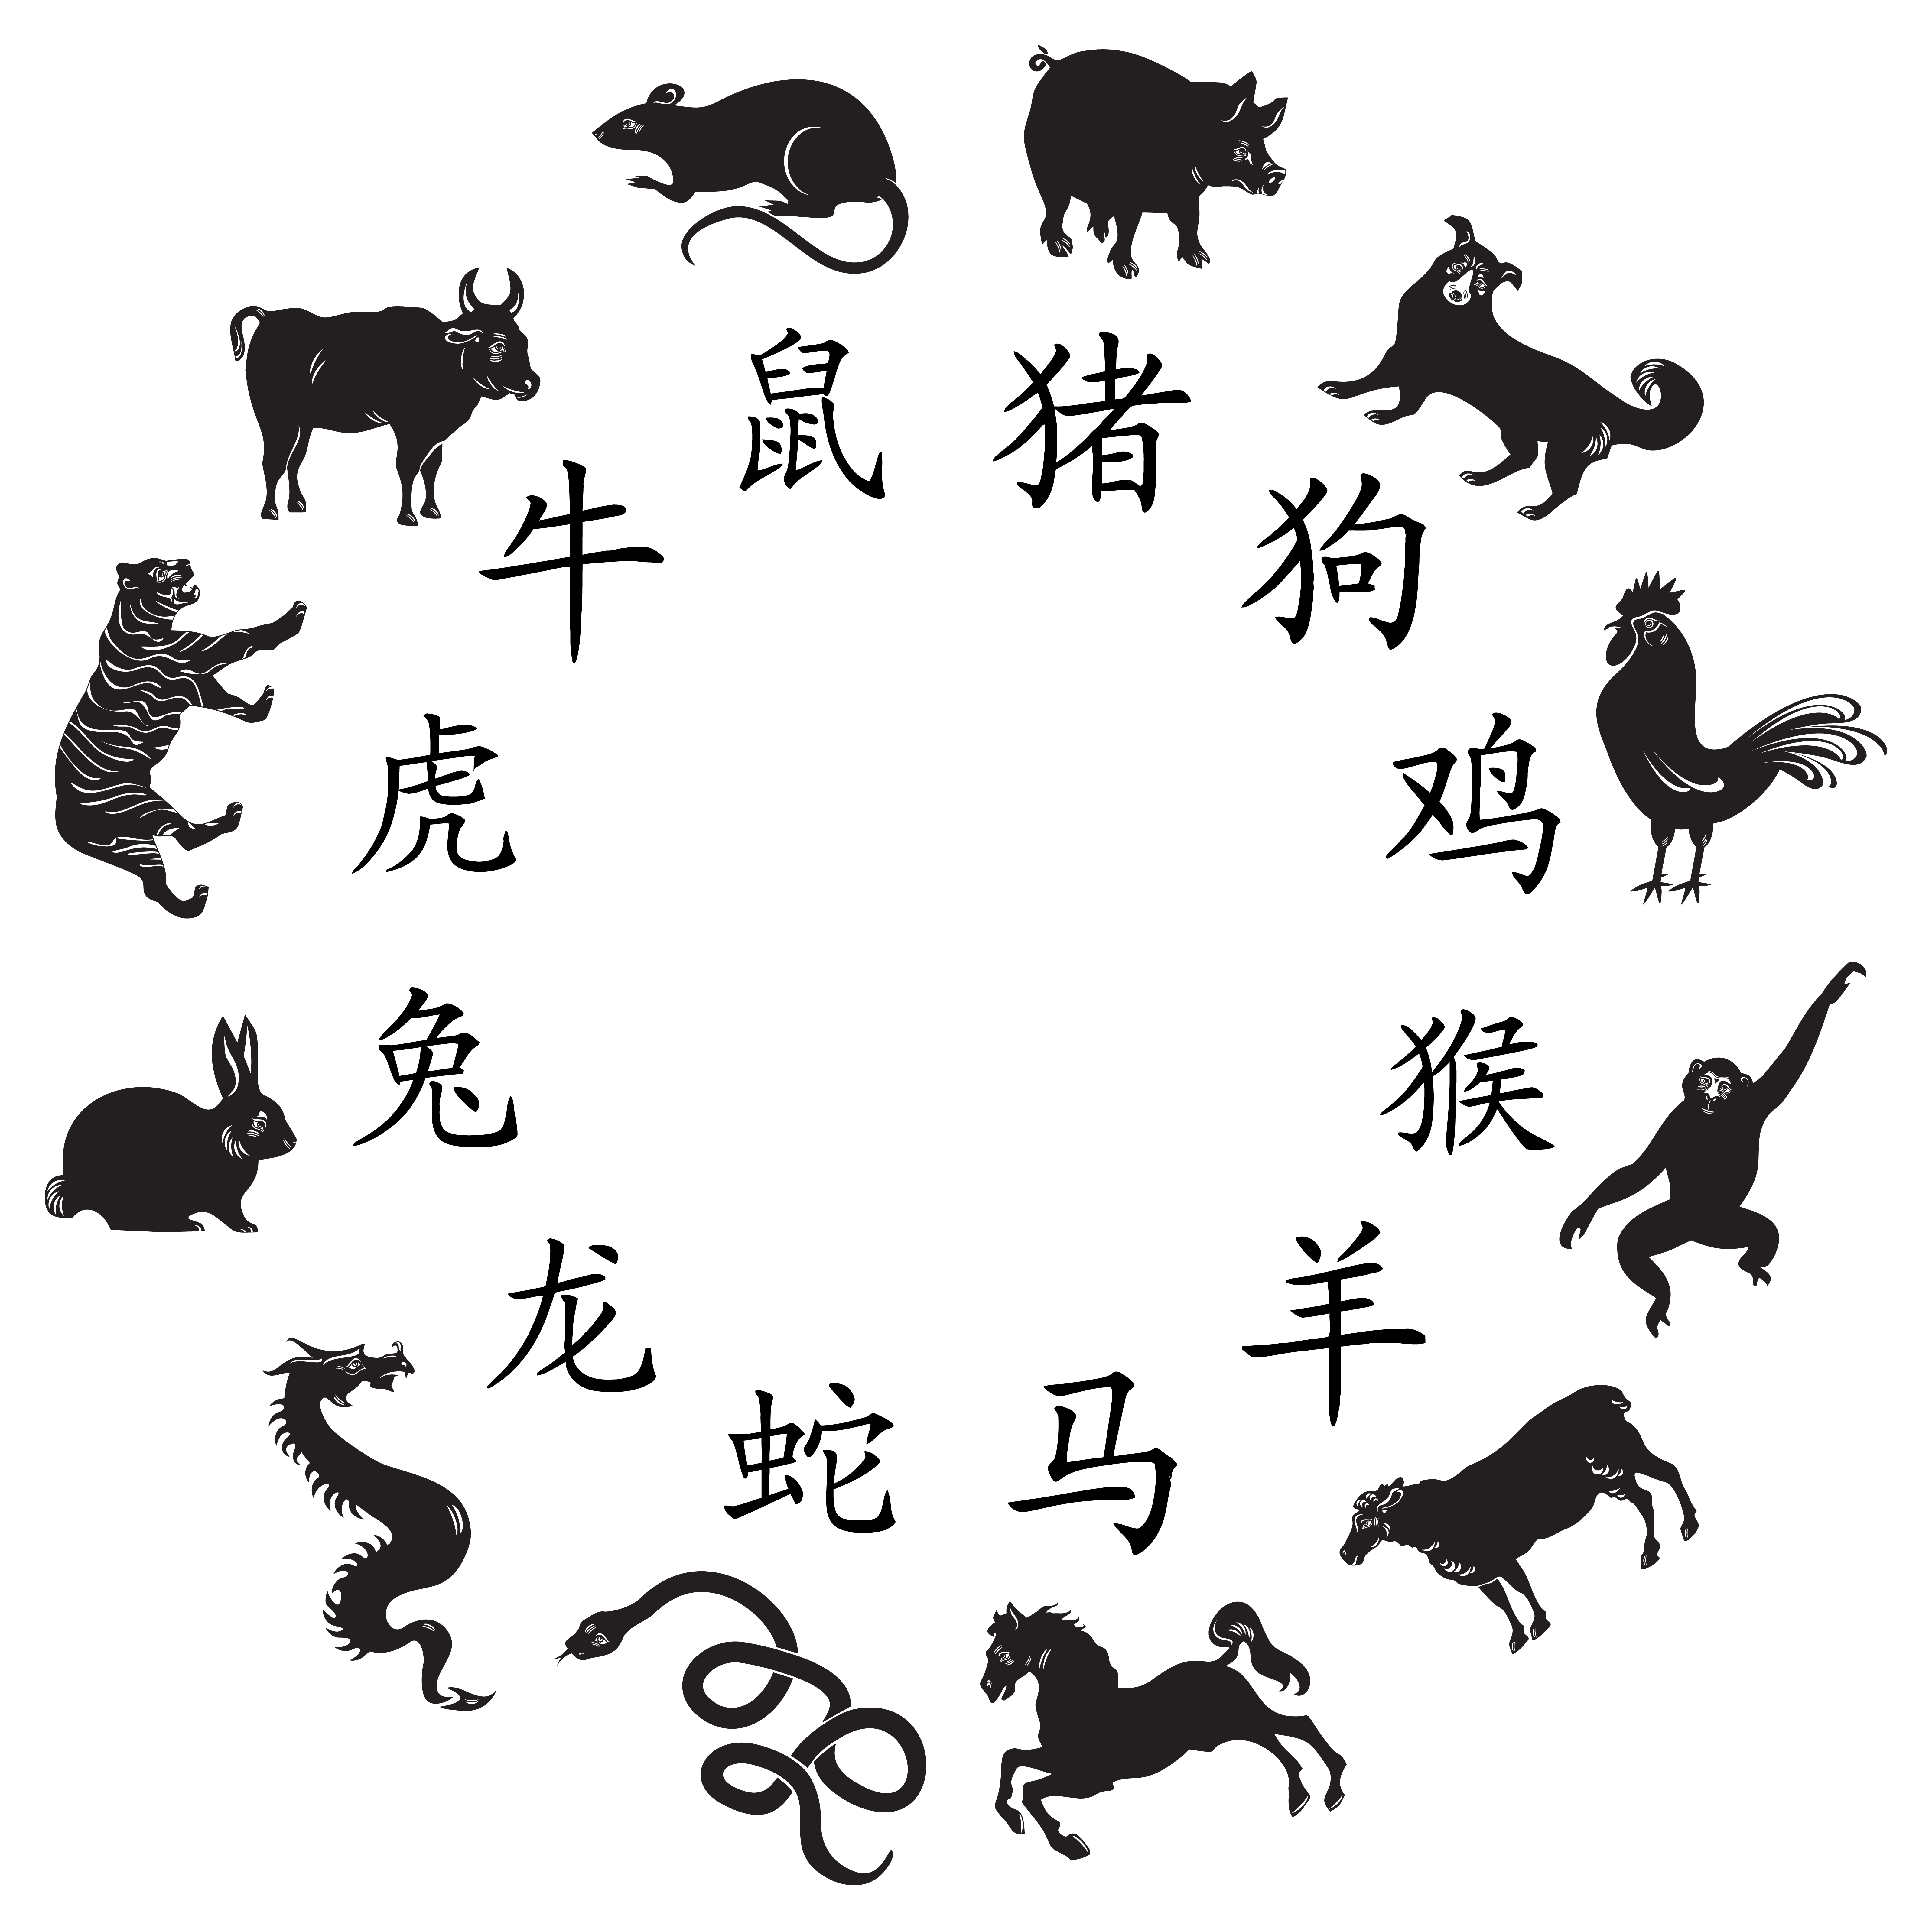 Chinese zodiac png image. China transparent clipart black and white download